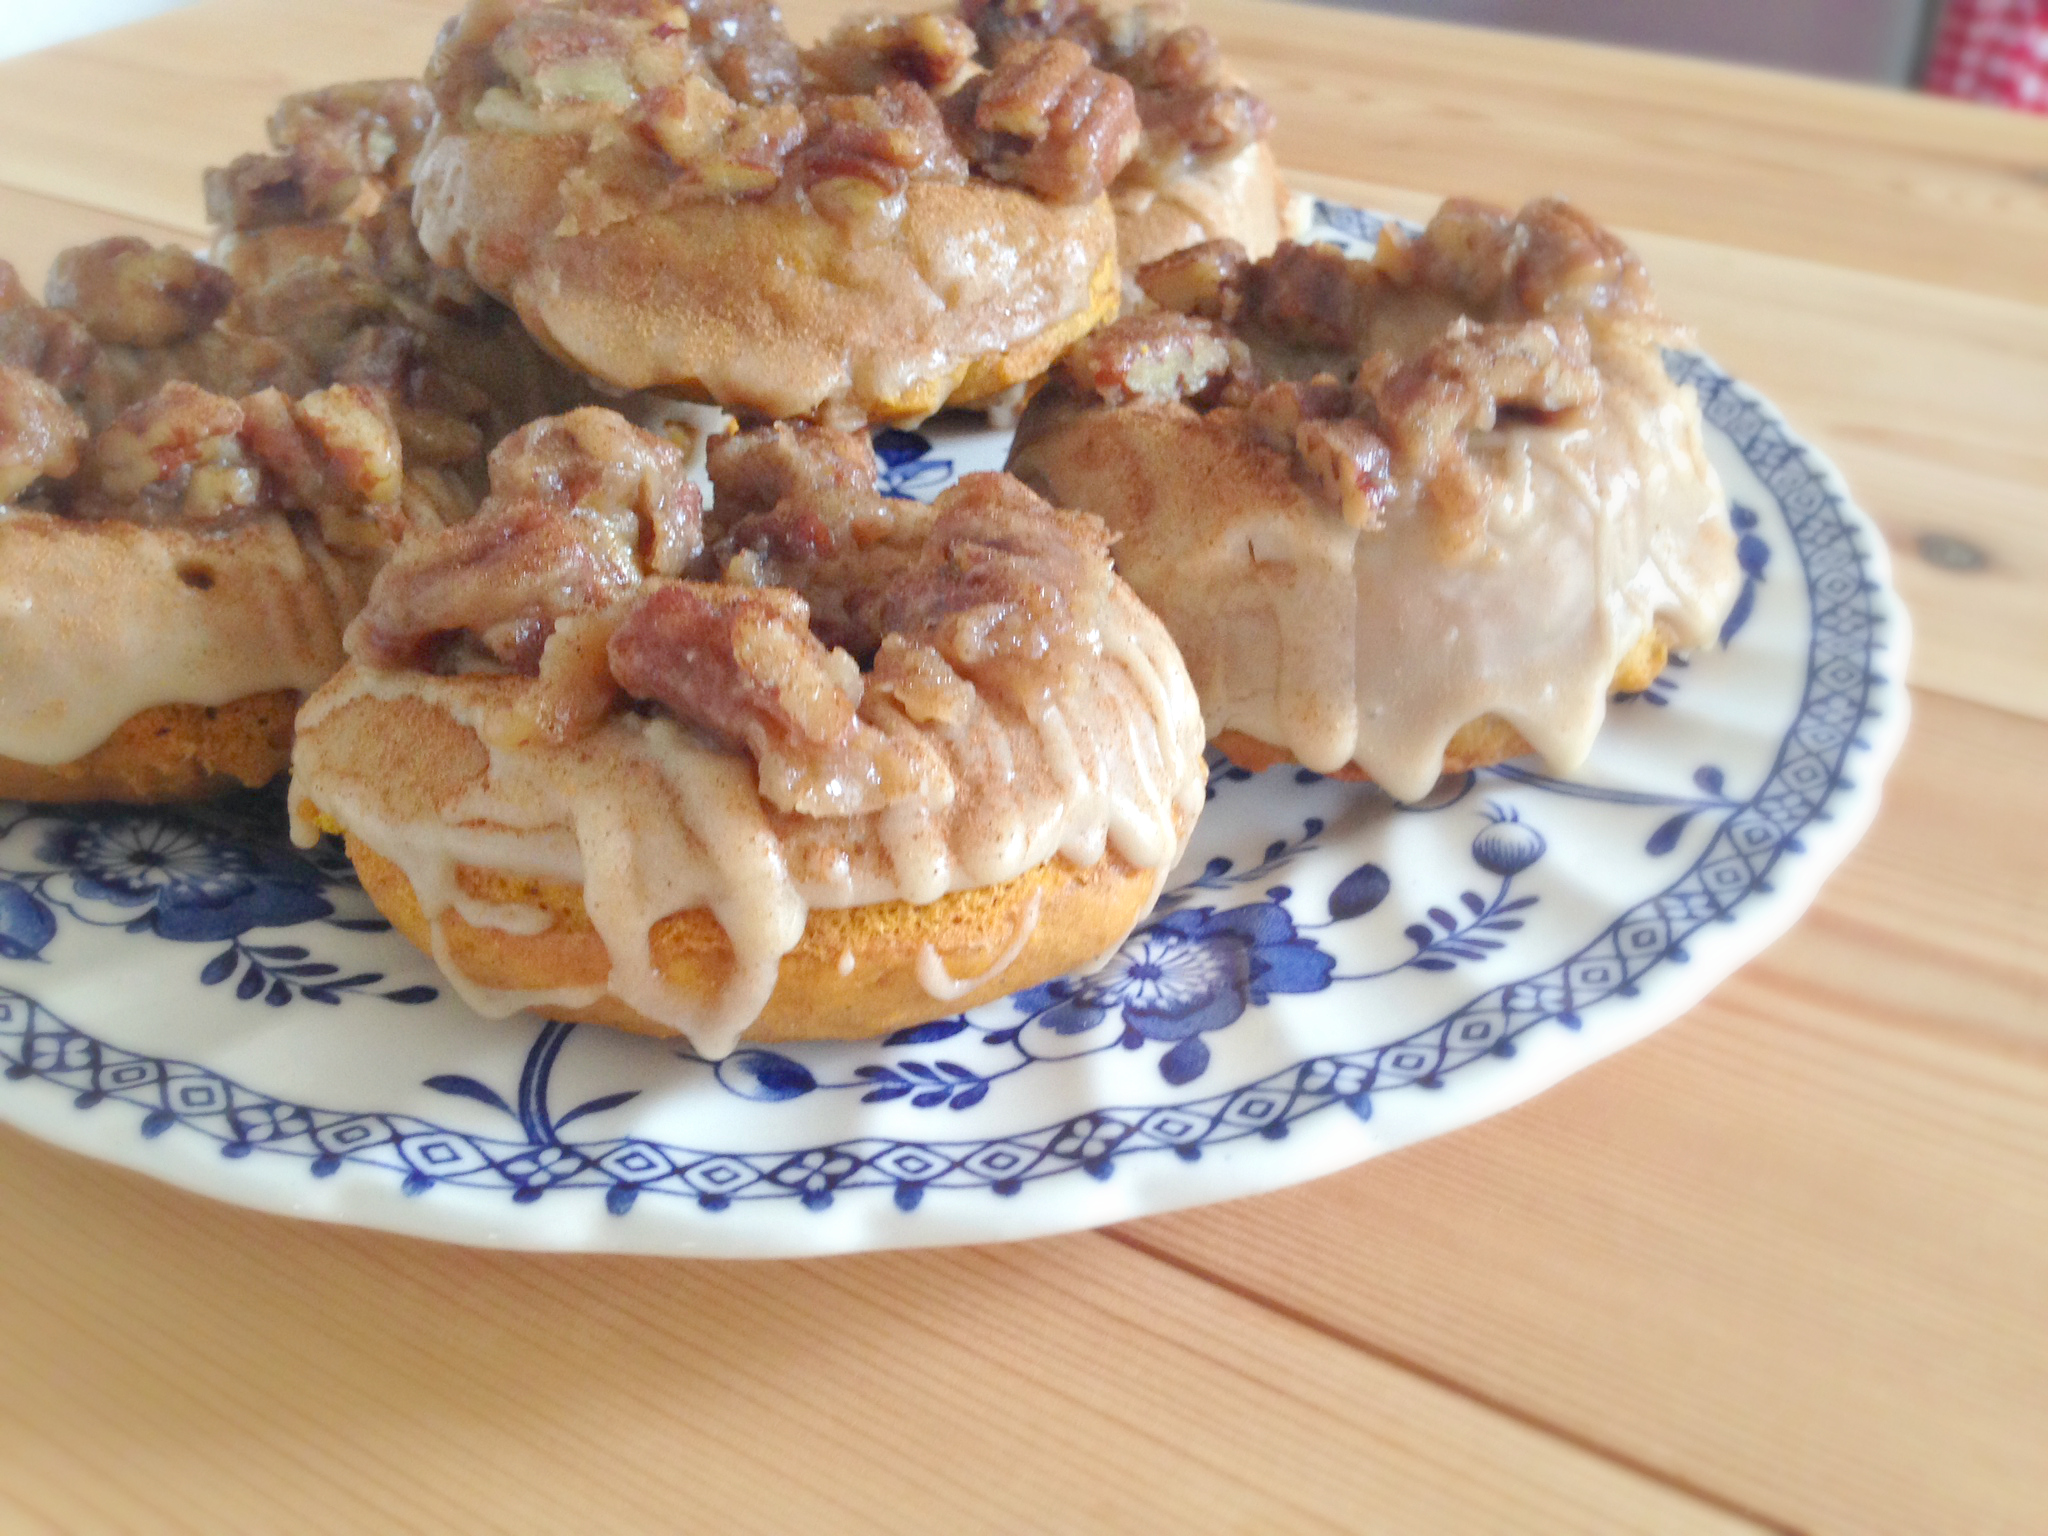 Baked Pumpkin Doughnuts with a Maple Glaze and Buttered Pecans | kerrycooks.com